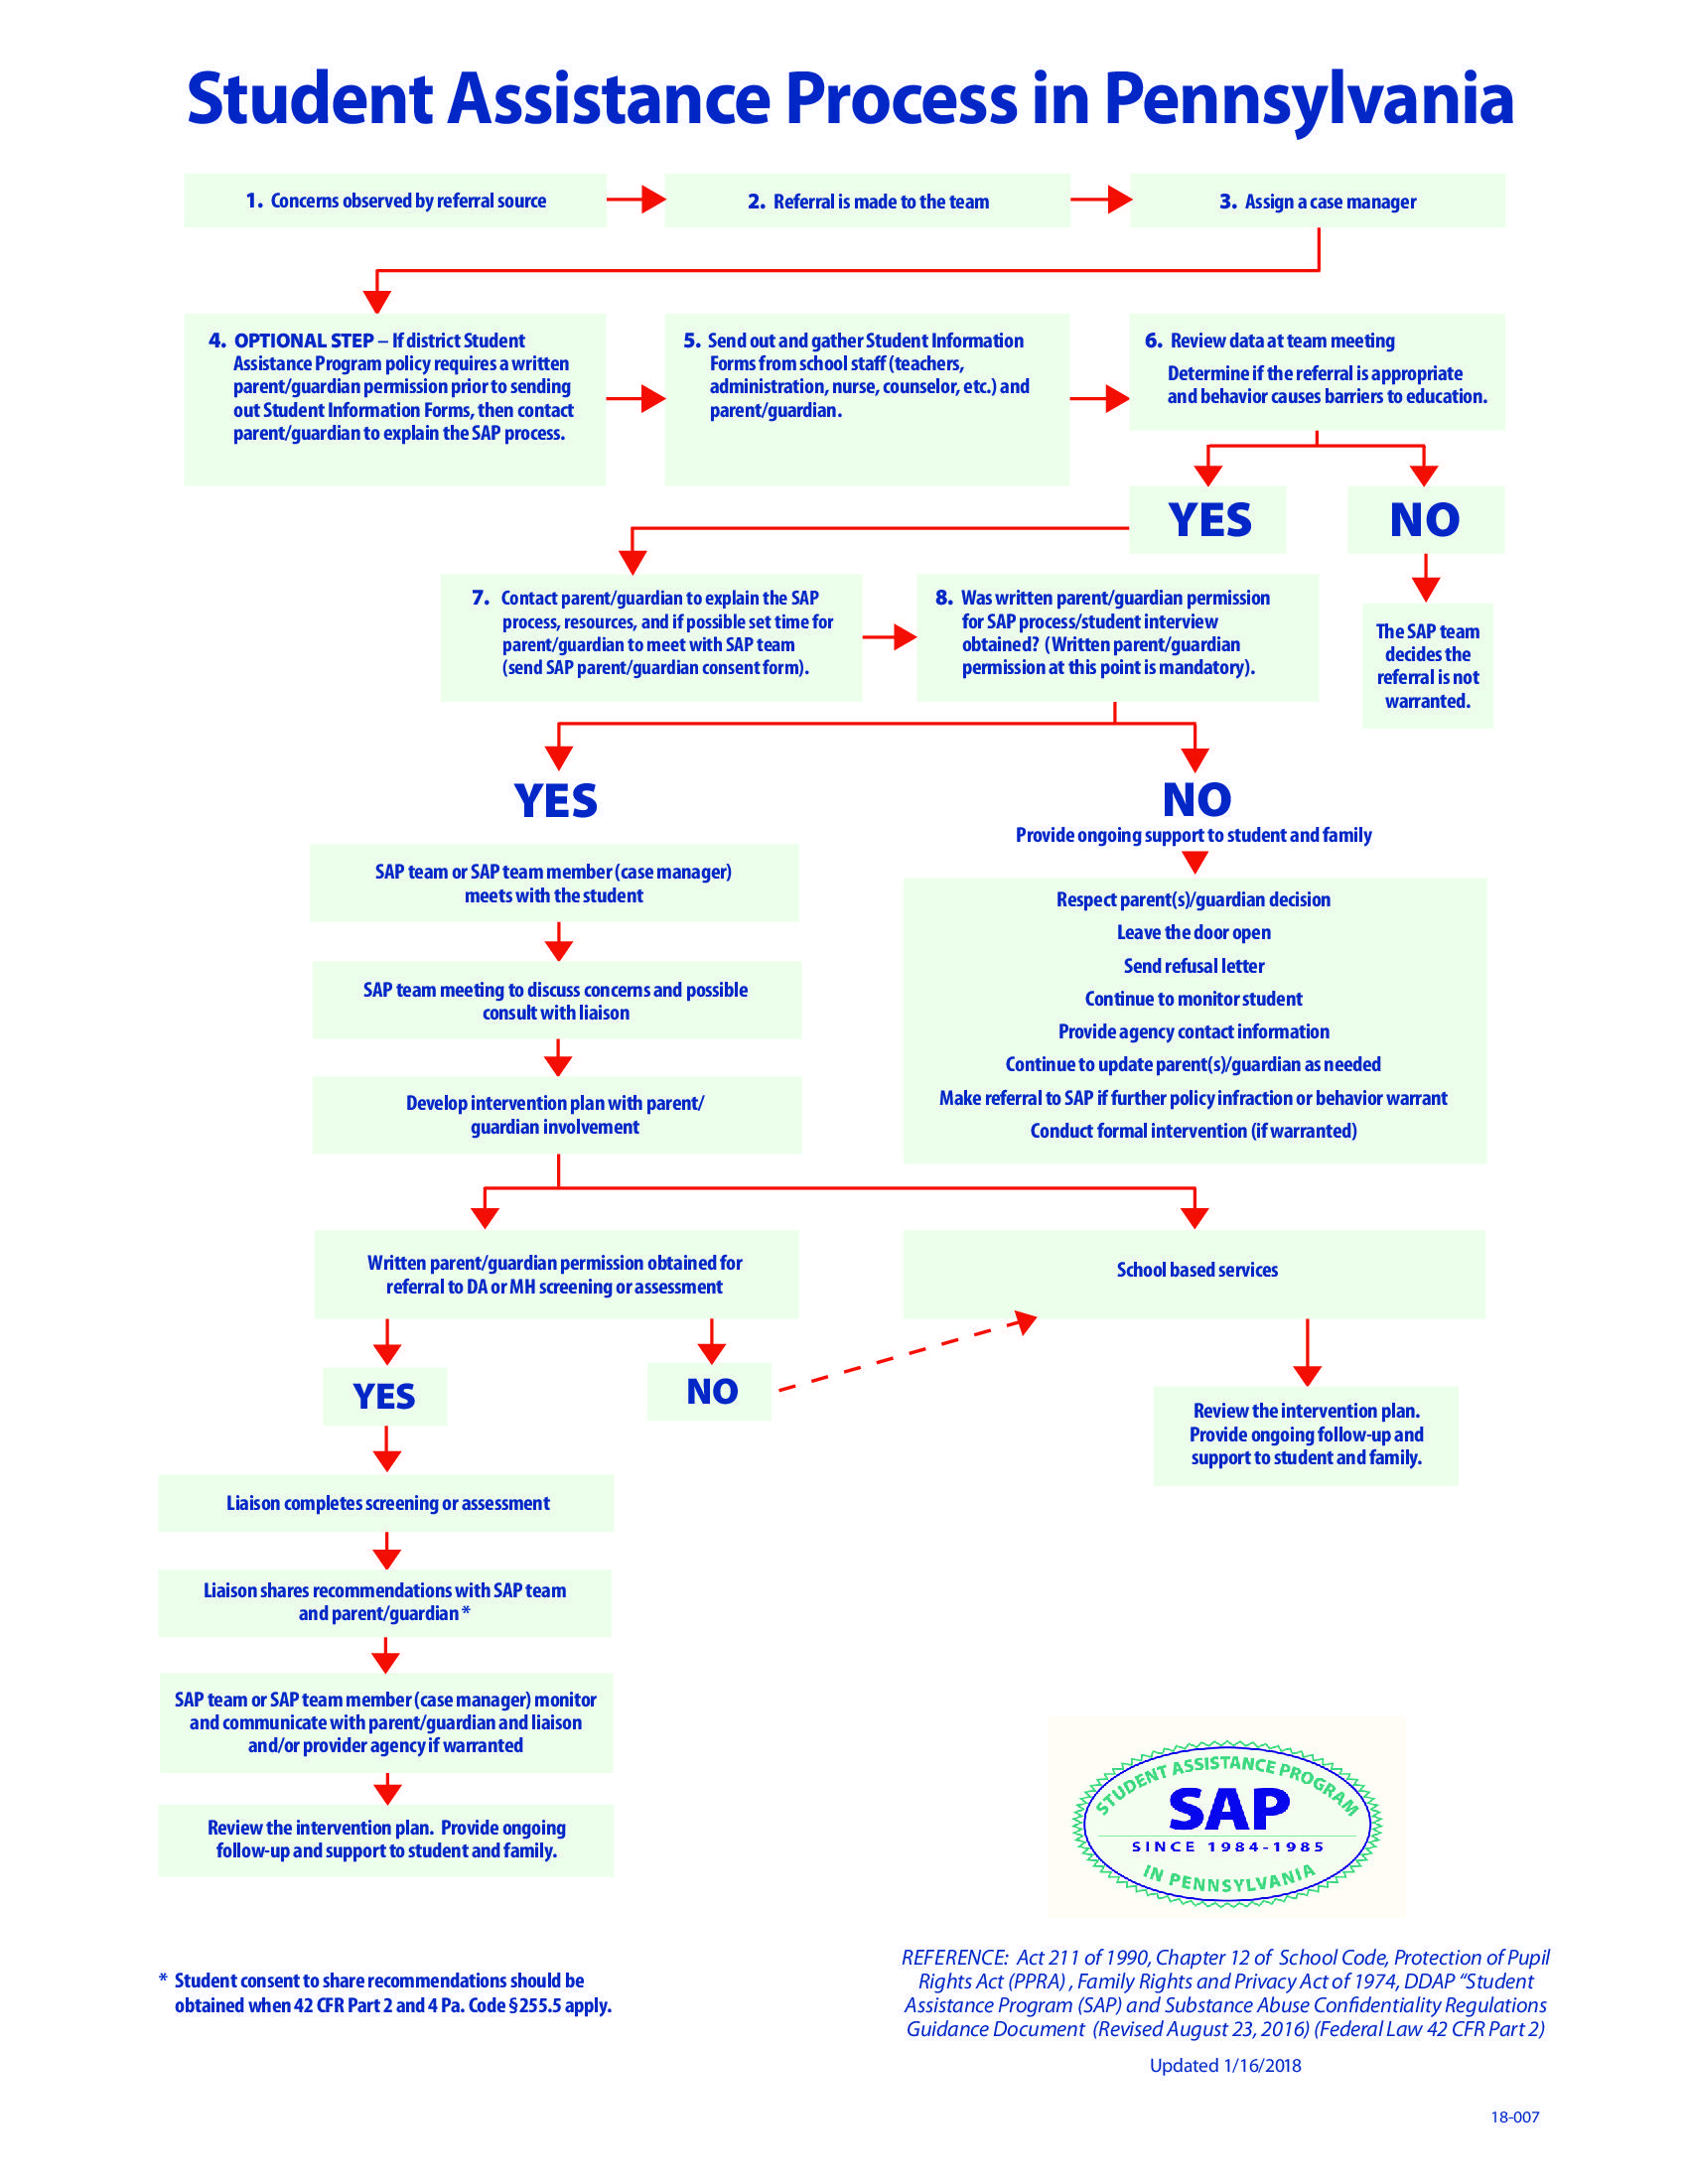 Student Assistance Program Sap School Counseling Services Process Flow Diagram Optional Steps Chart